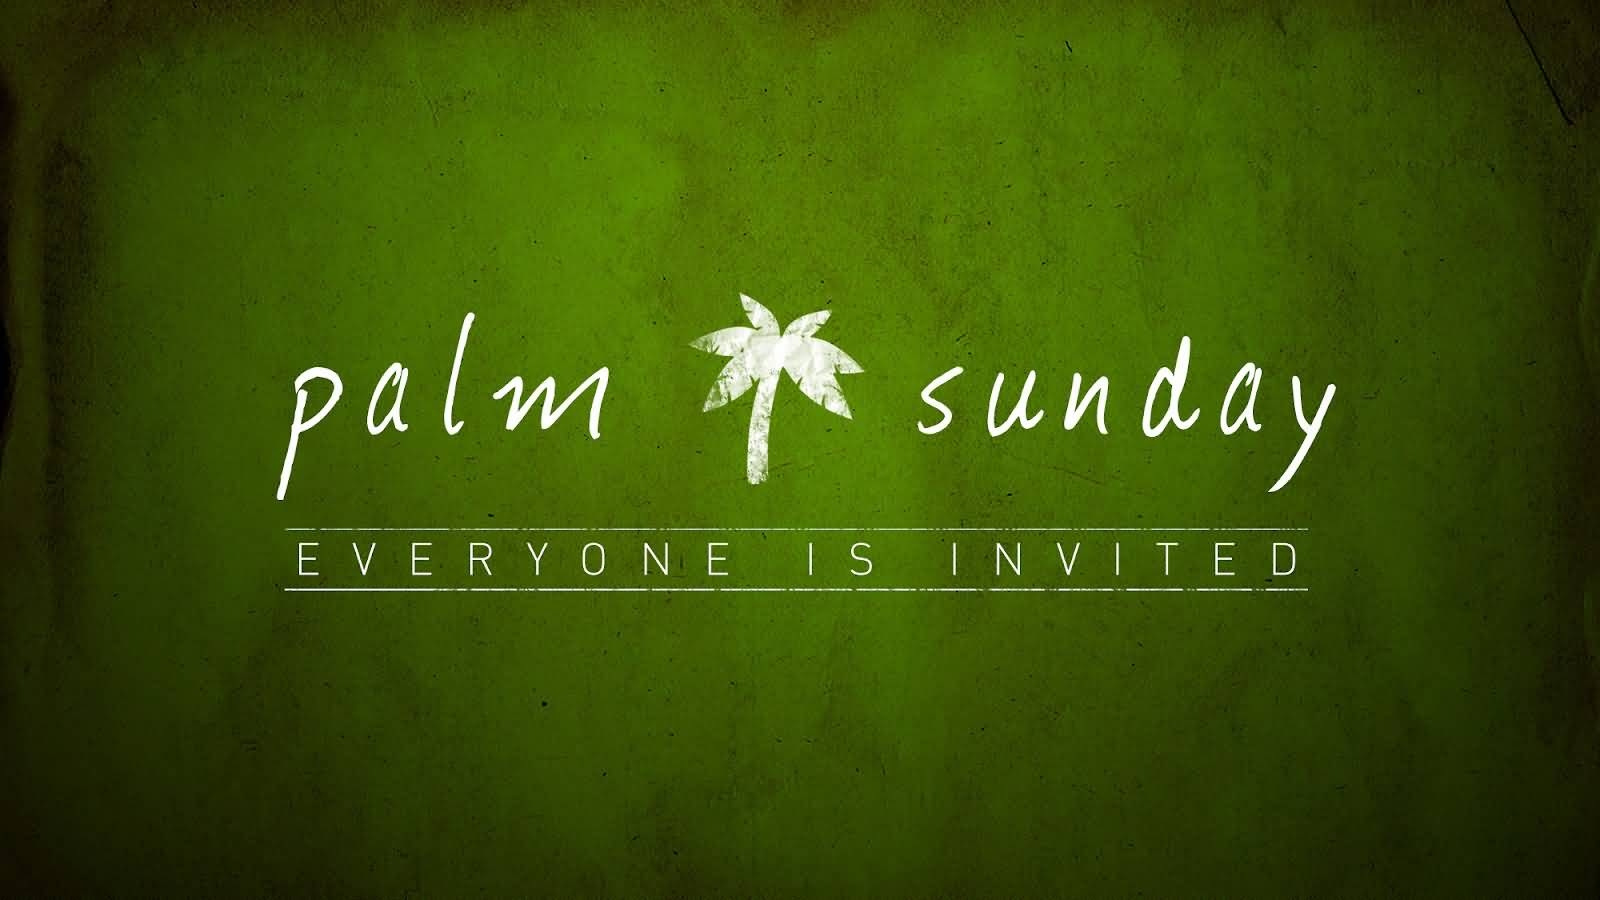 Palm Sunday Everyone Is Invited